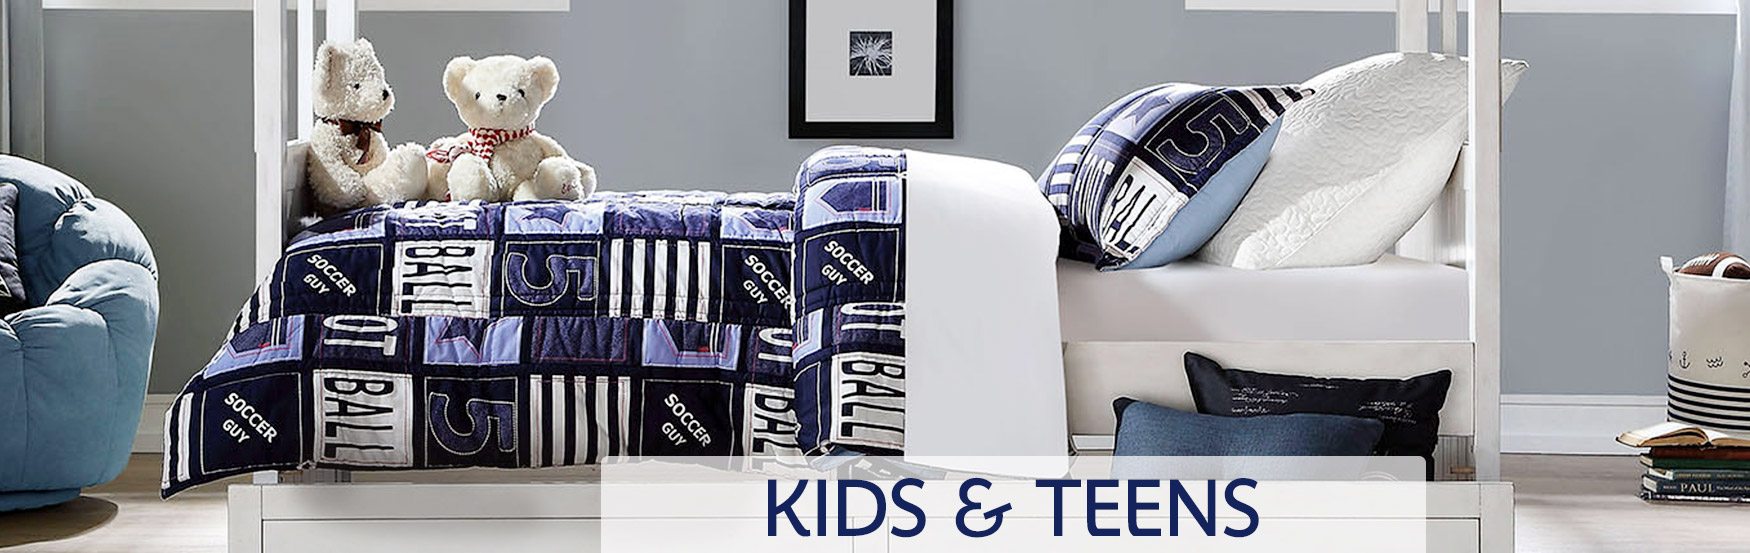 Kids & Teens Furniture Banner